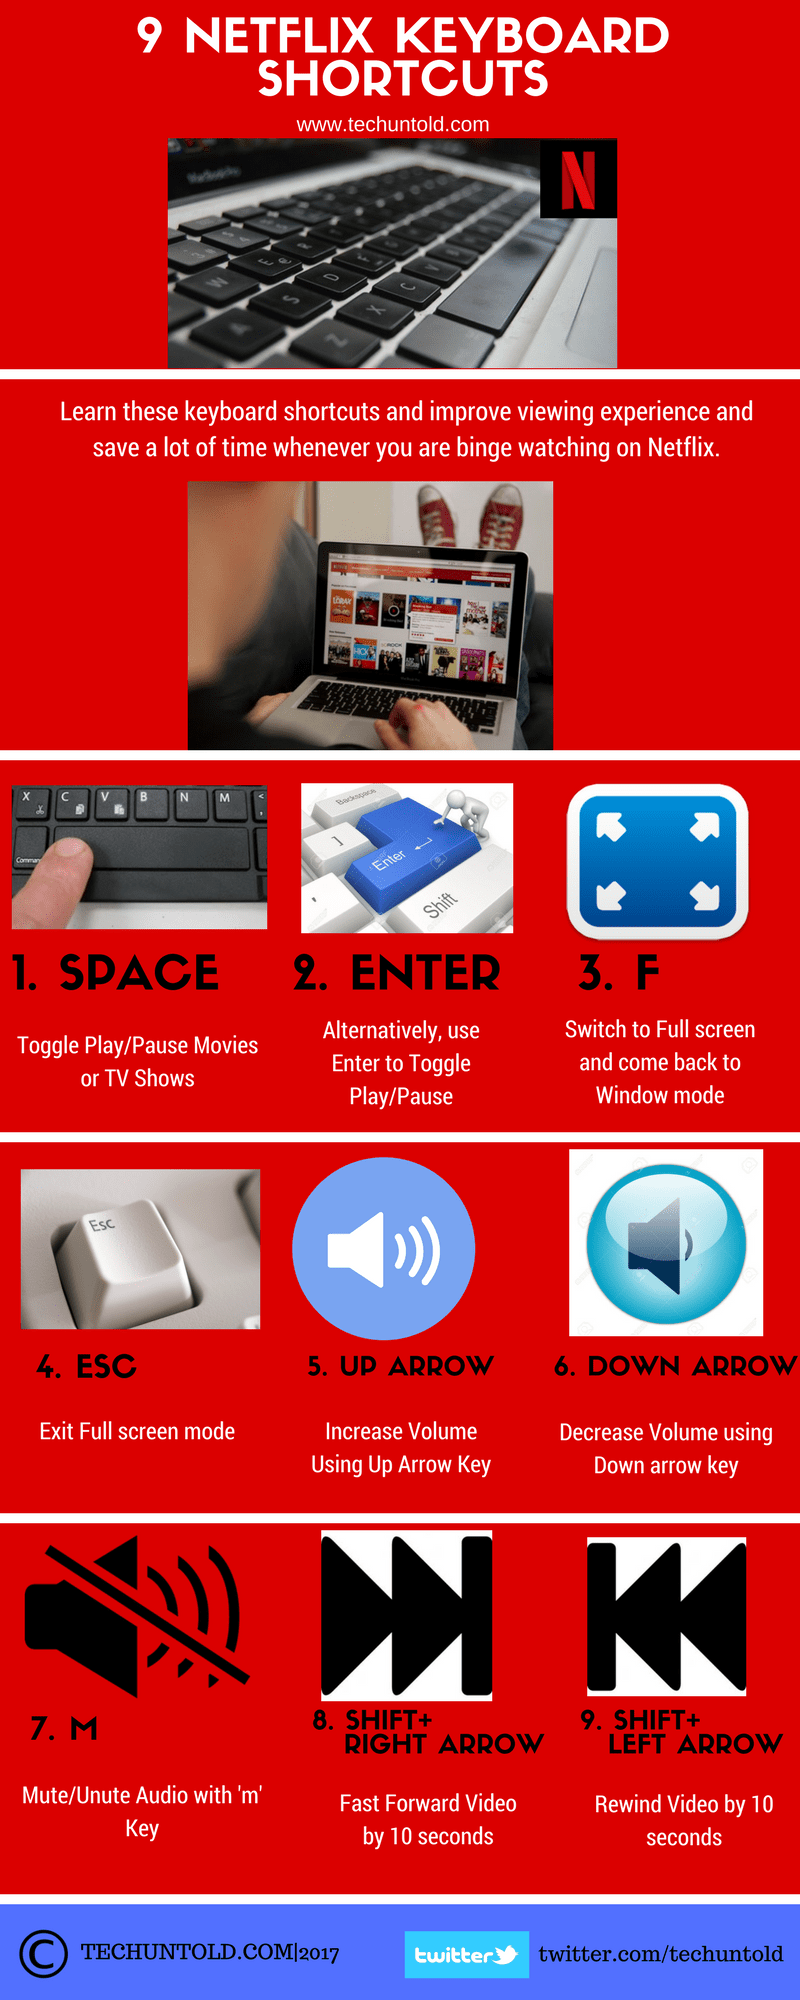 Netflix keyboard shortcuts Infographic